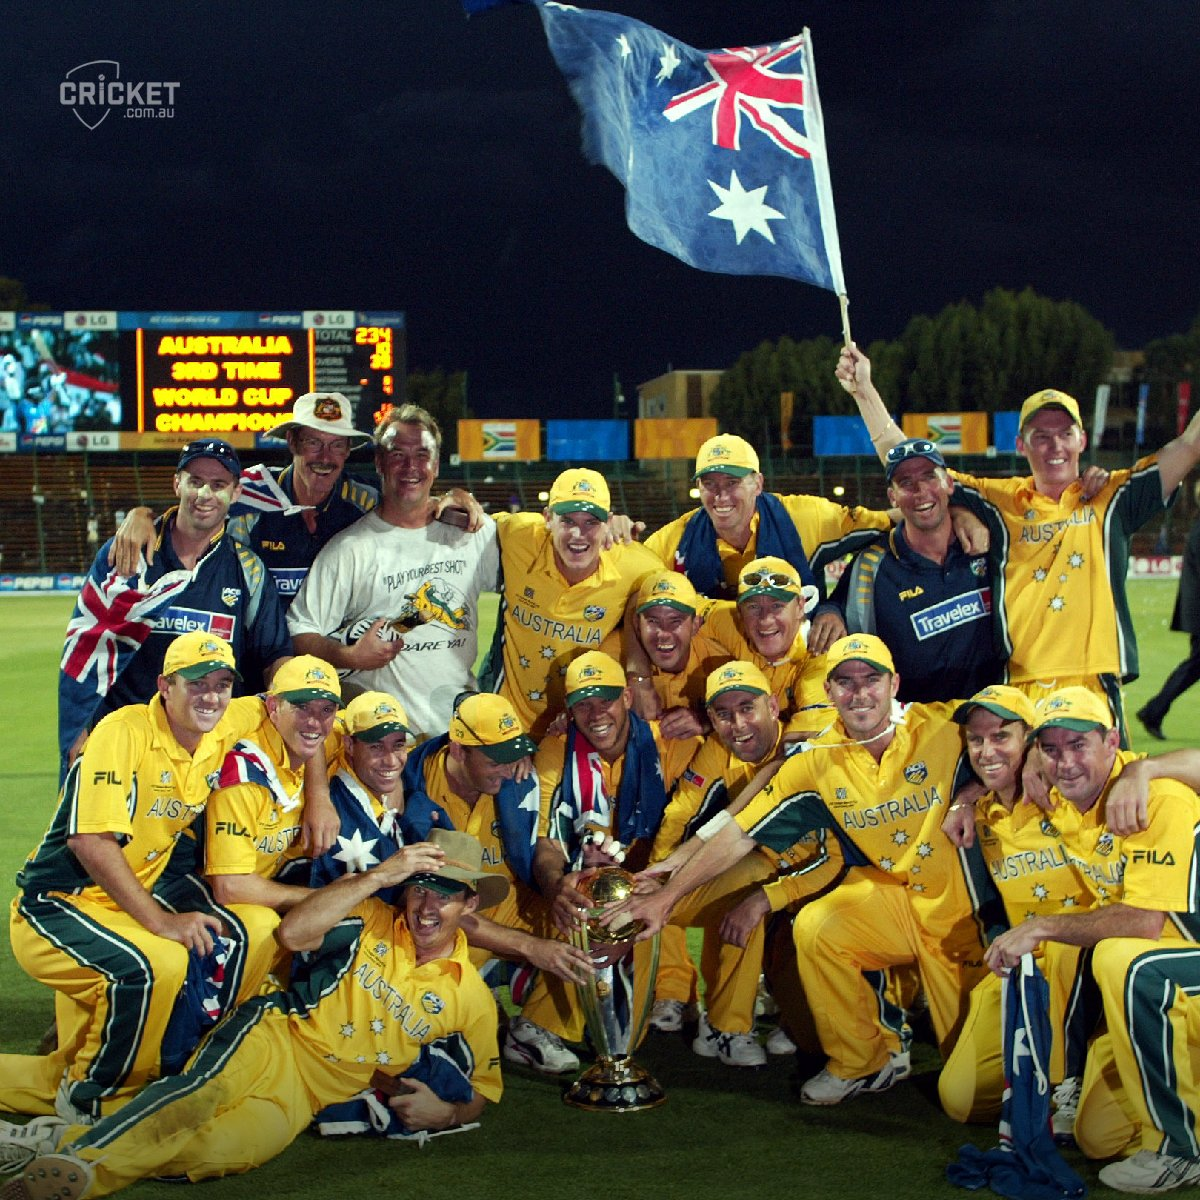 The Aussie celebrations are just beginning after taking the 2003 Cricket World Cup in South Africa #WayBackWednesday